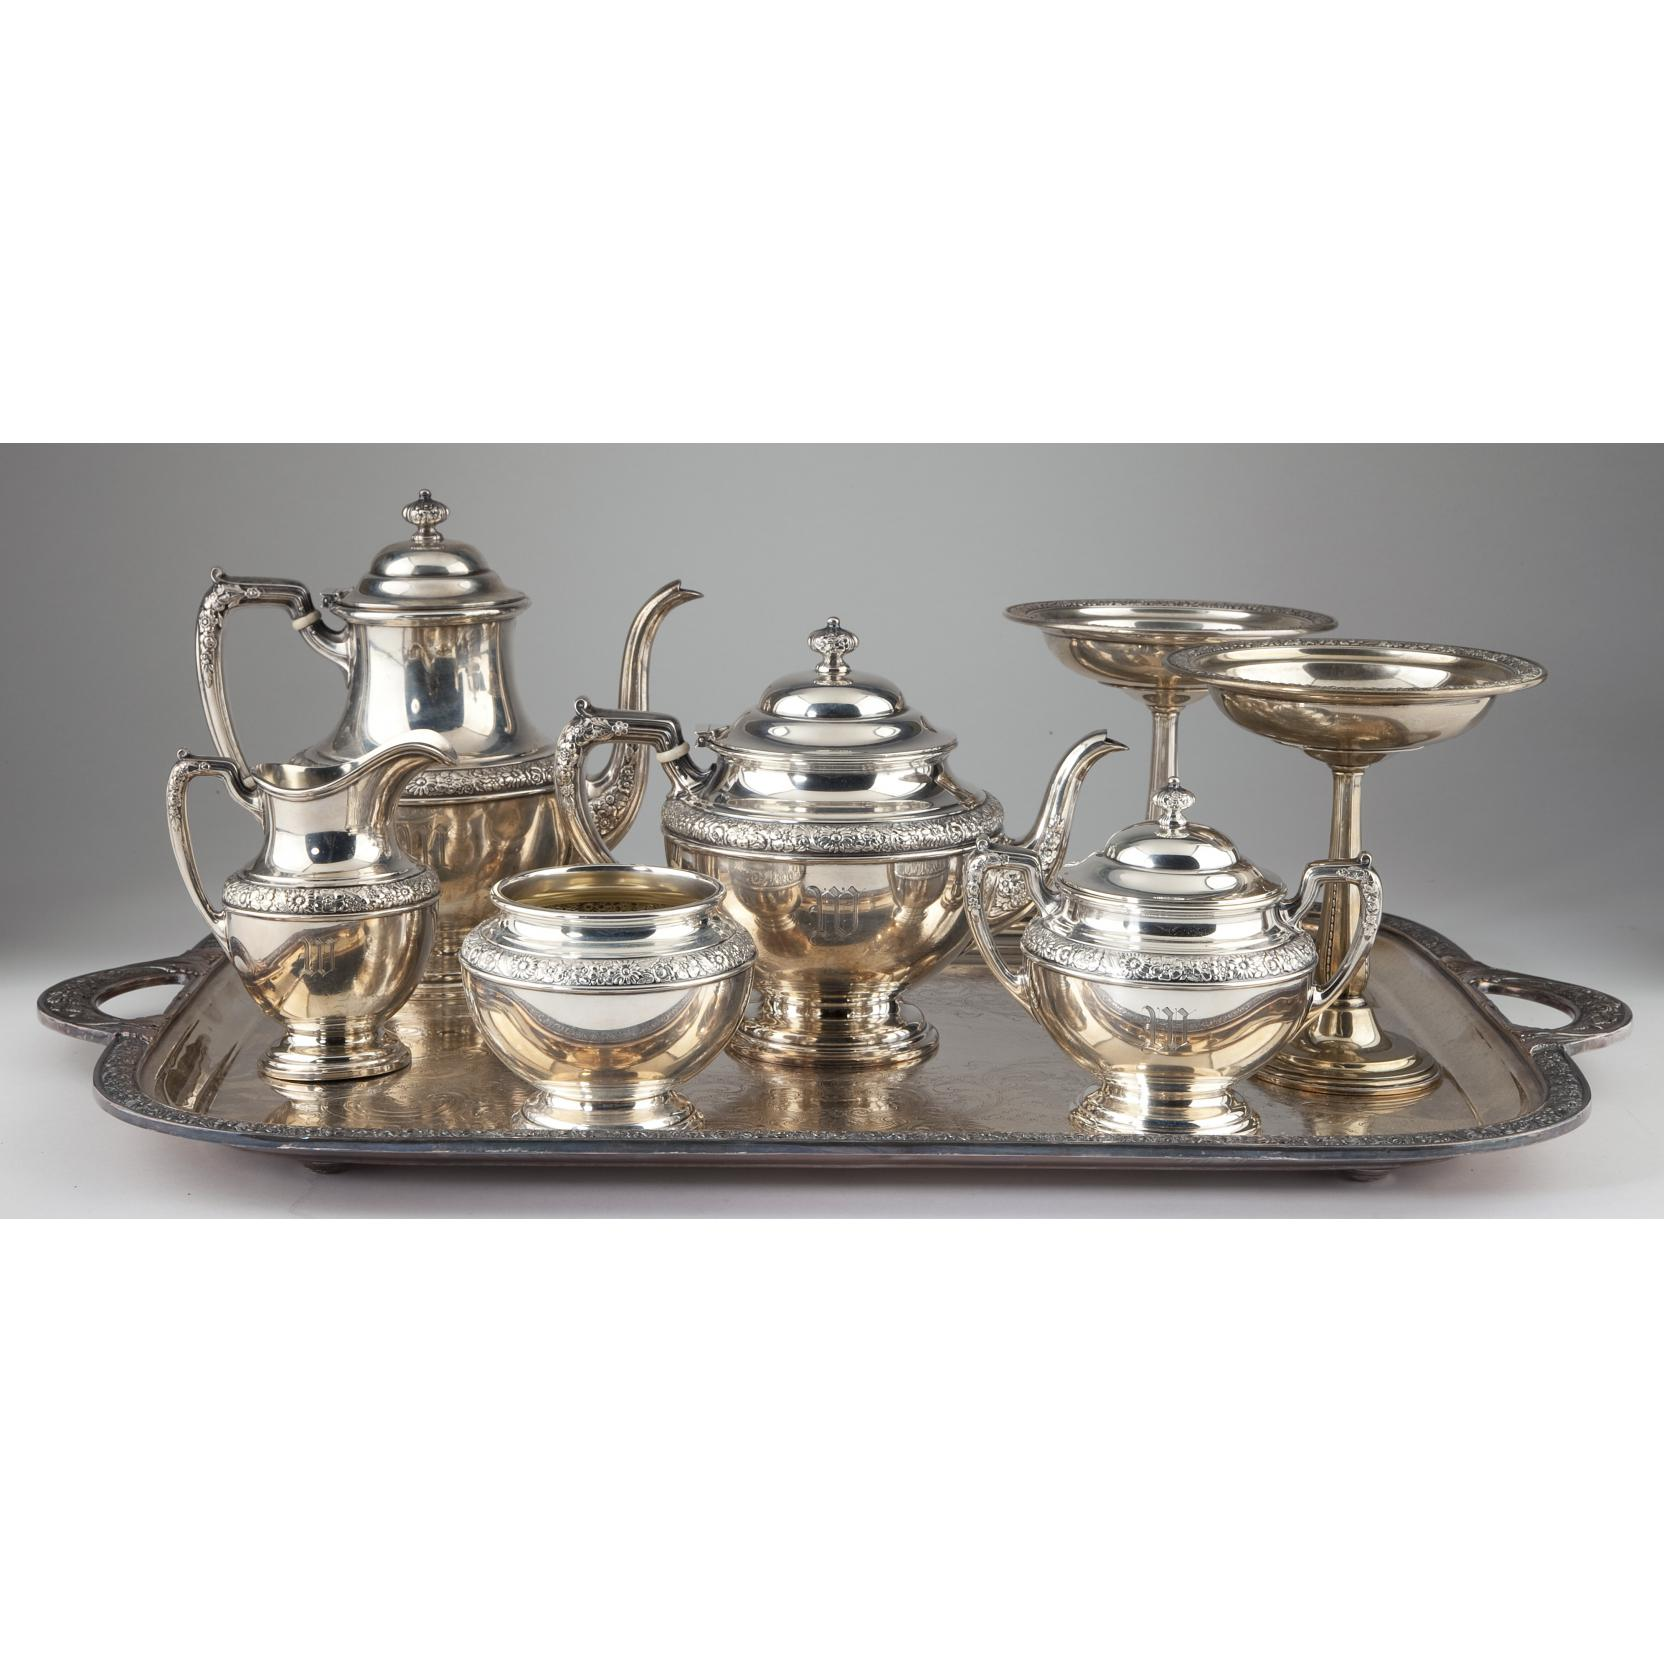 alvin-sterling-tea-set-and-pair-compotes